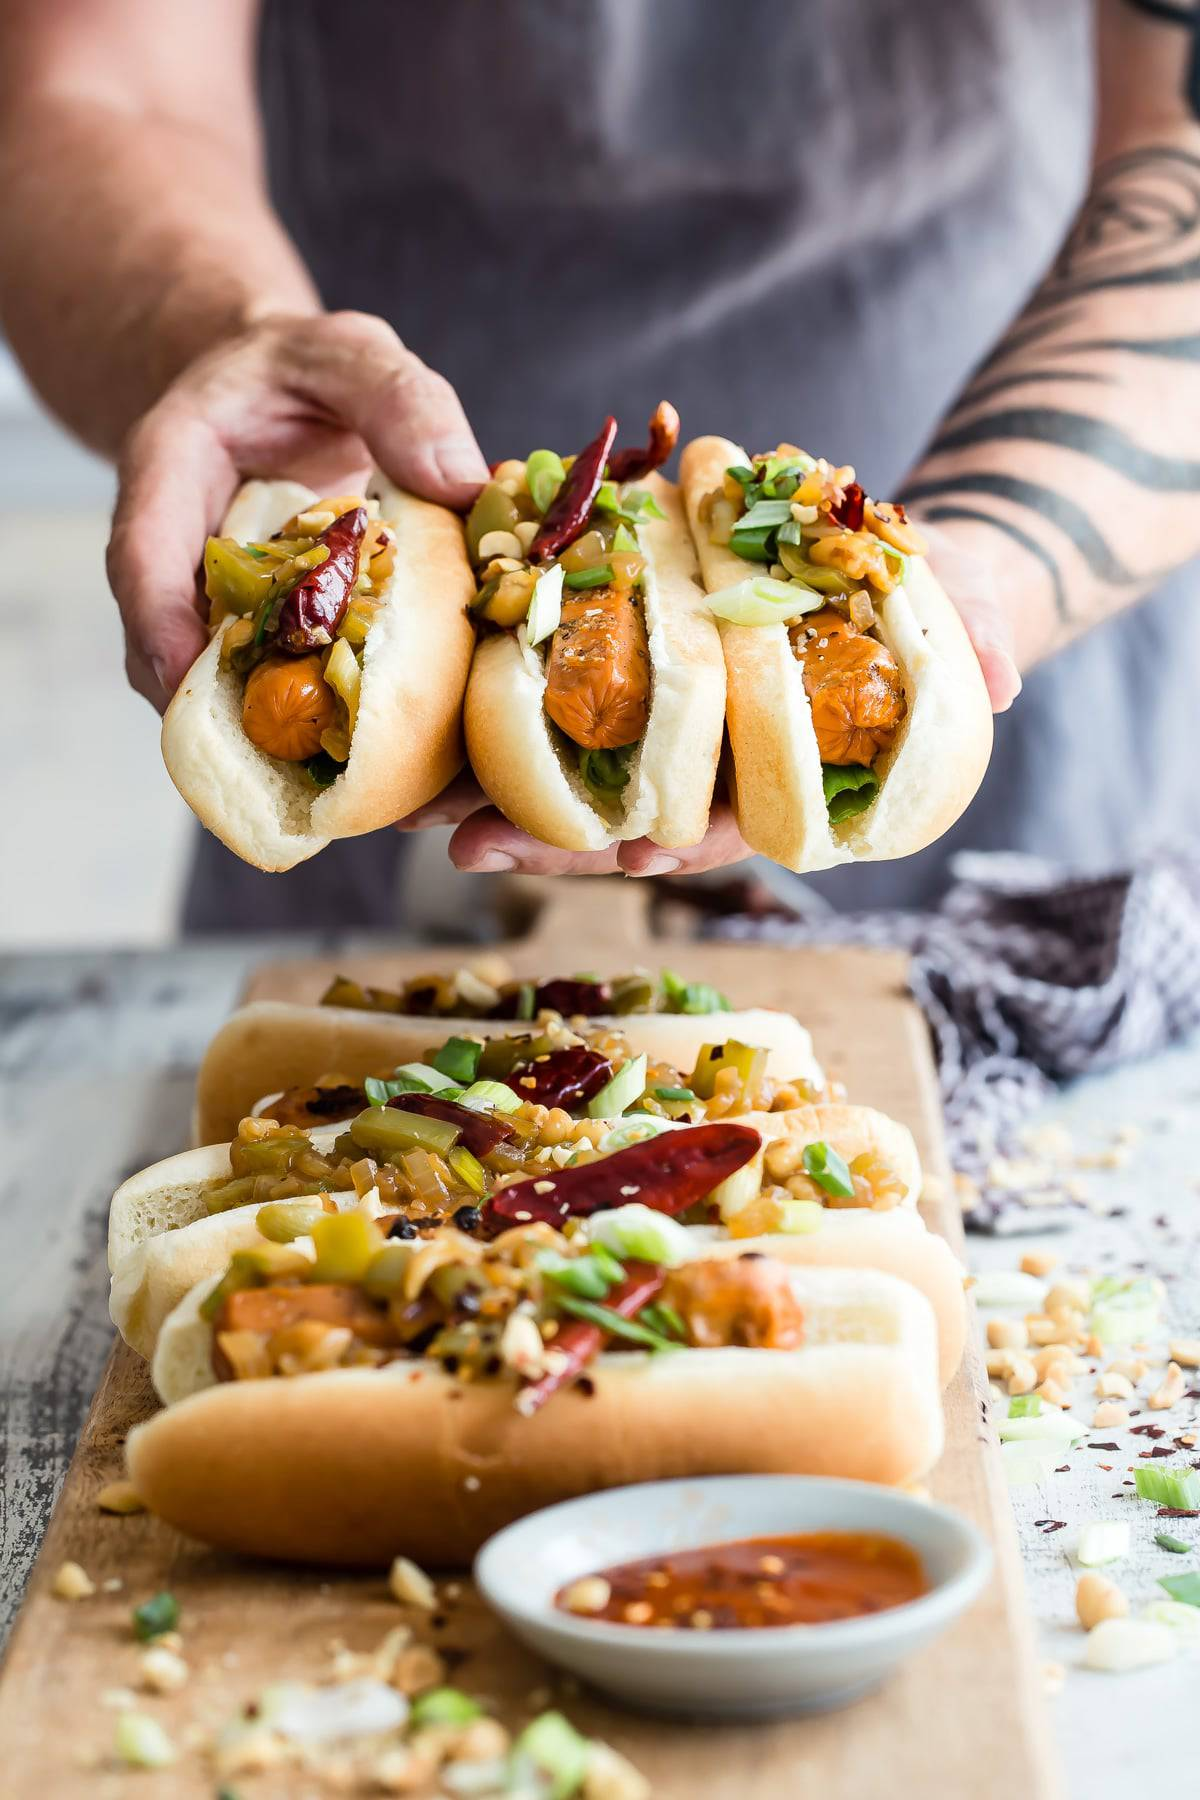 Epic veggie hotdogs for summer